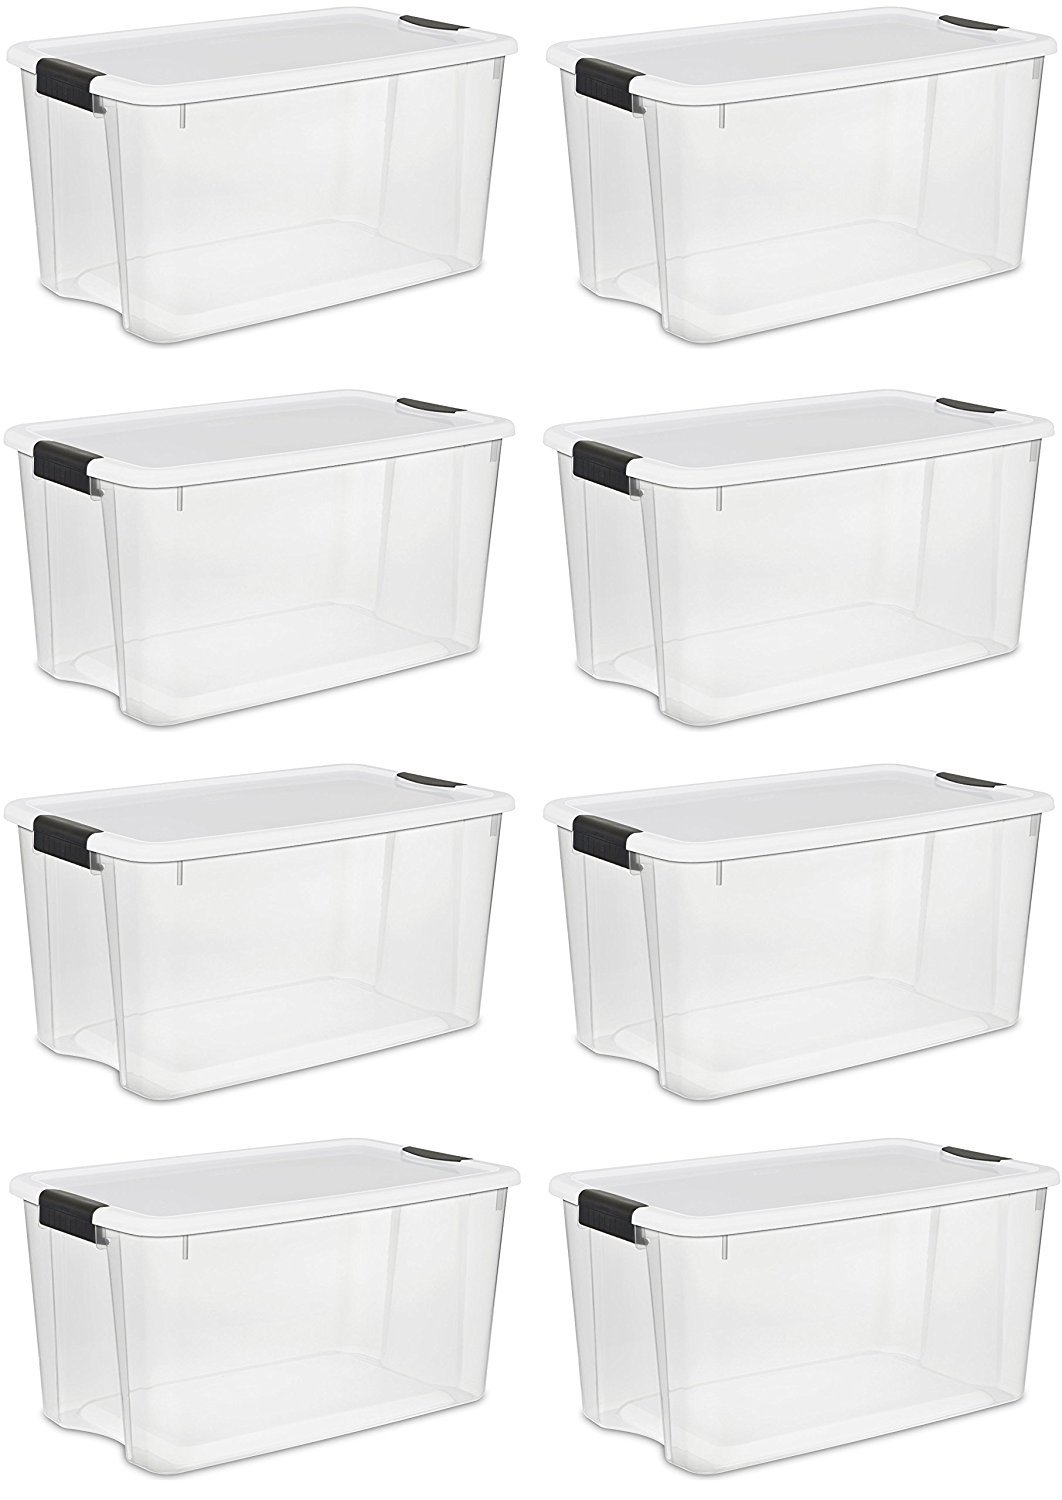 Sterilite 116 Quart/110 Liter Ultra Latch Box, Clear with a White Lid and Black Latches, (116 Quart, 8-Pack)